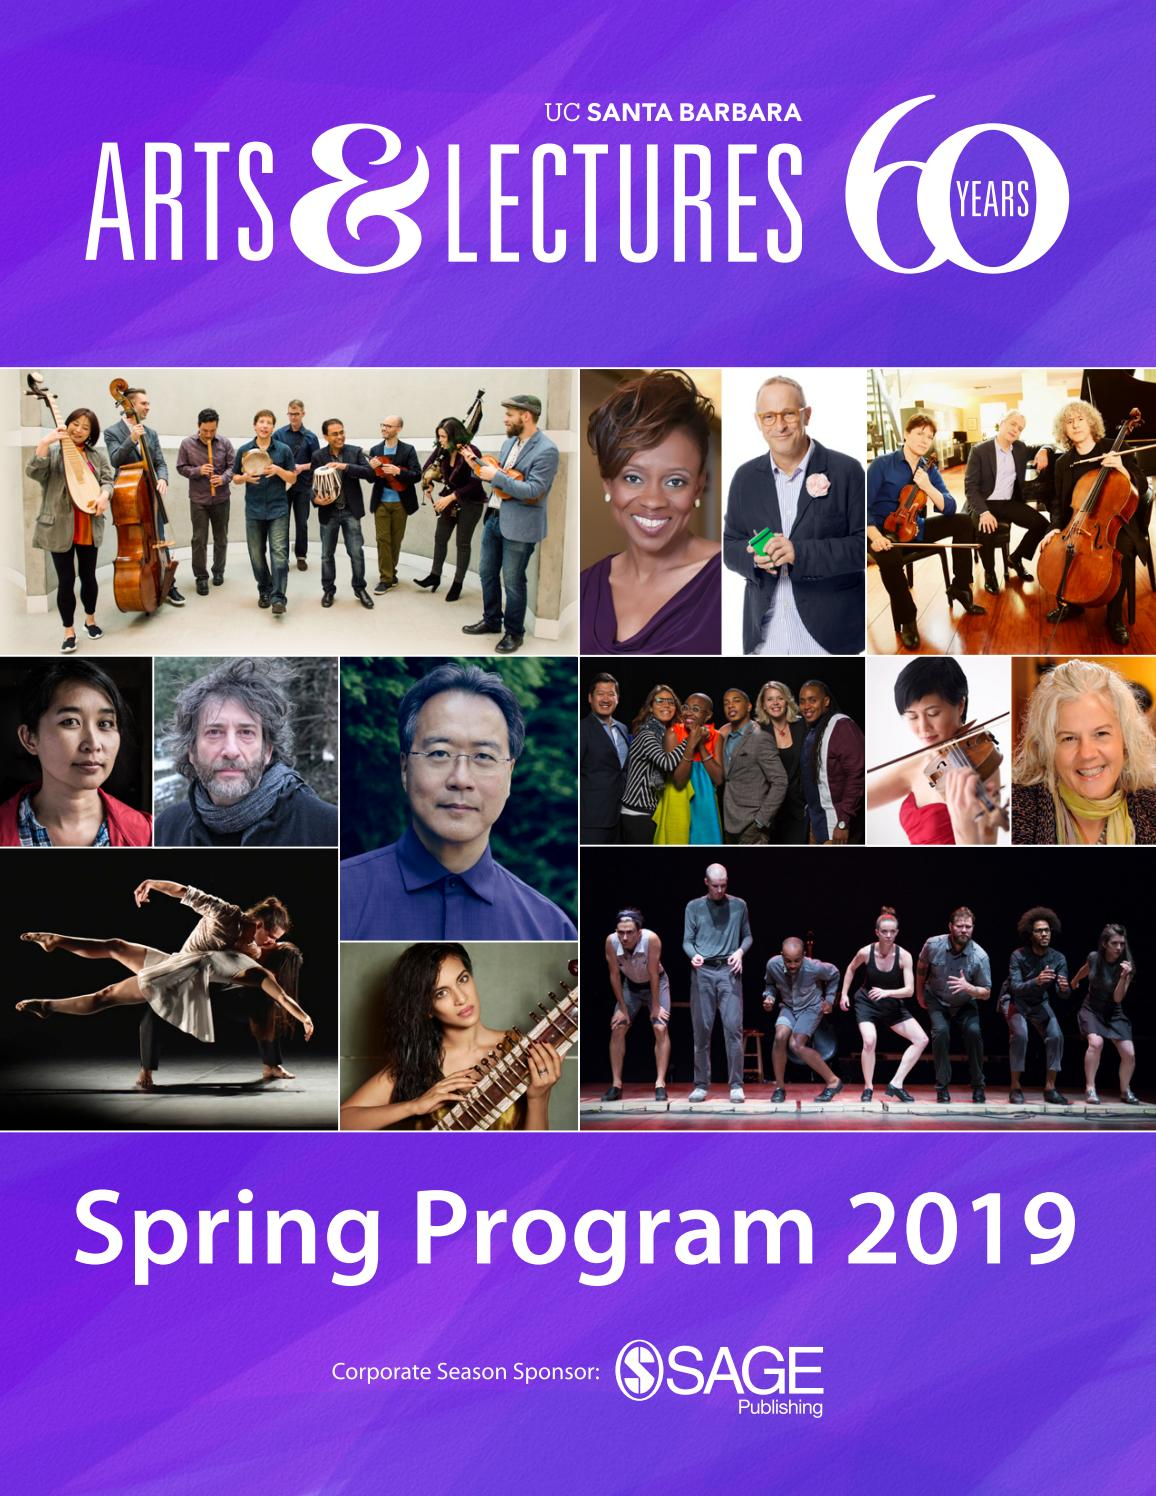 UCSB Arts & Lectures - Spring Program 2019 by UCSB Arts